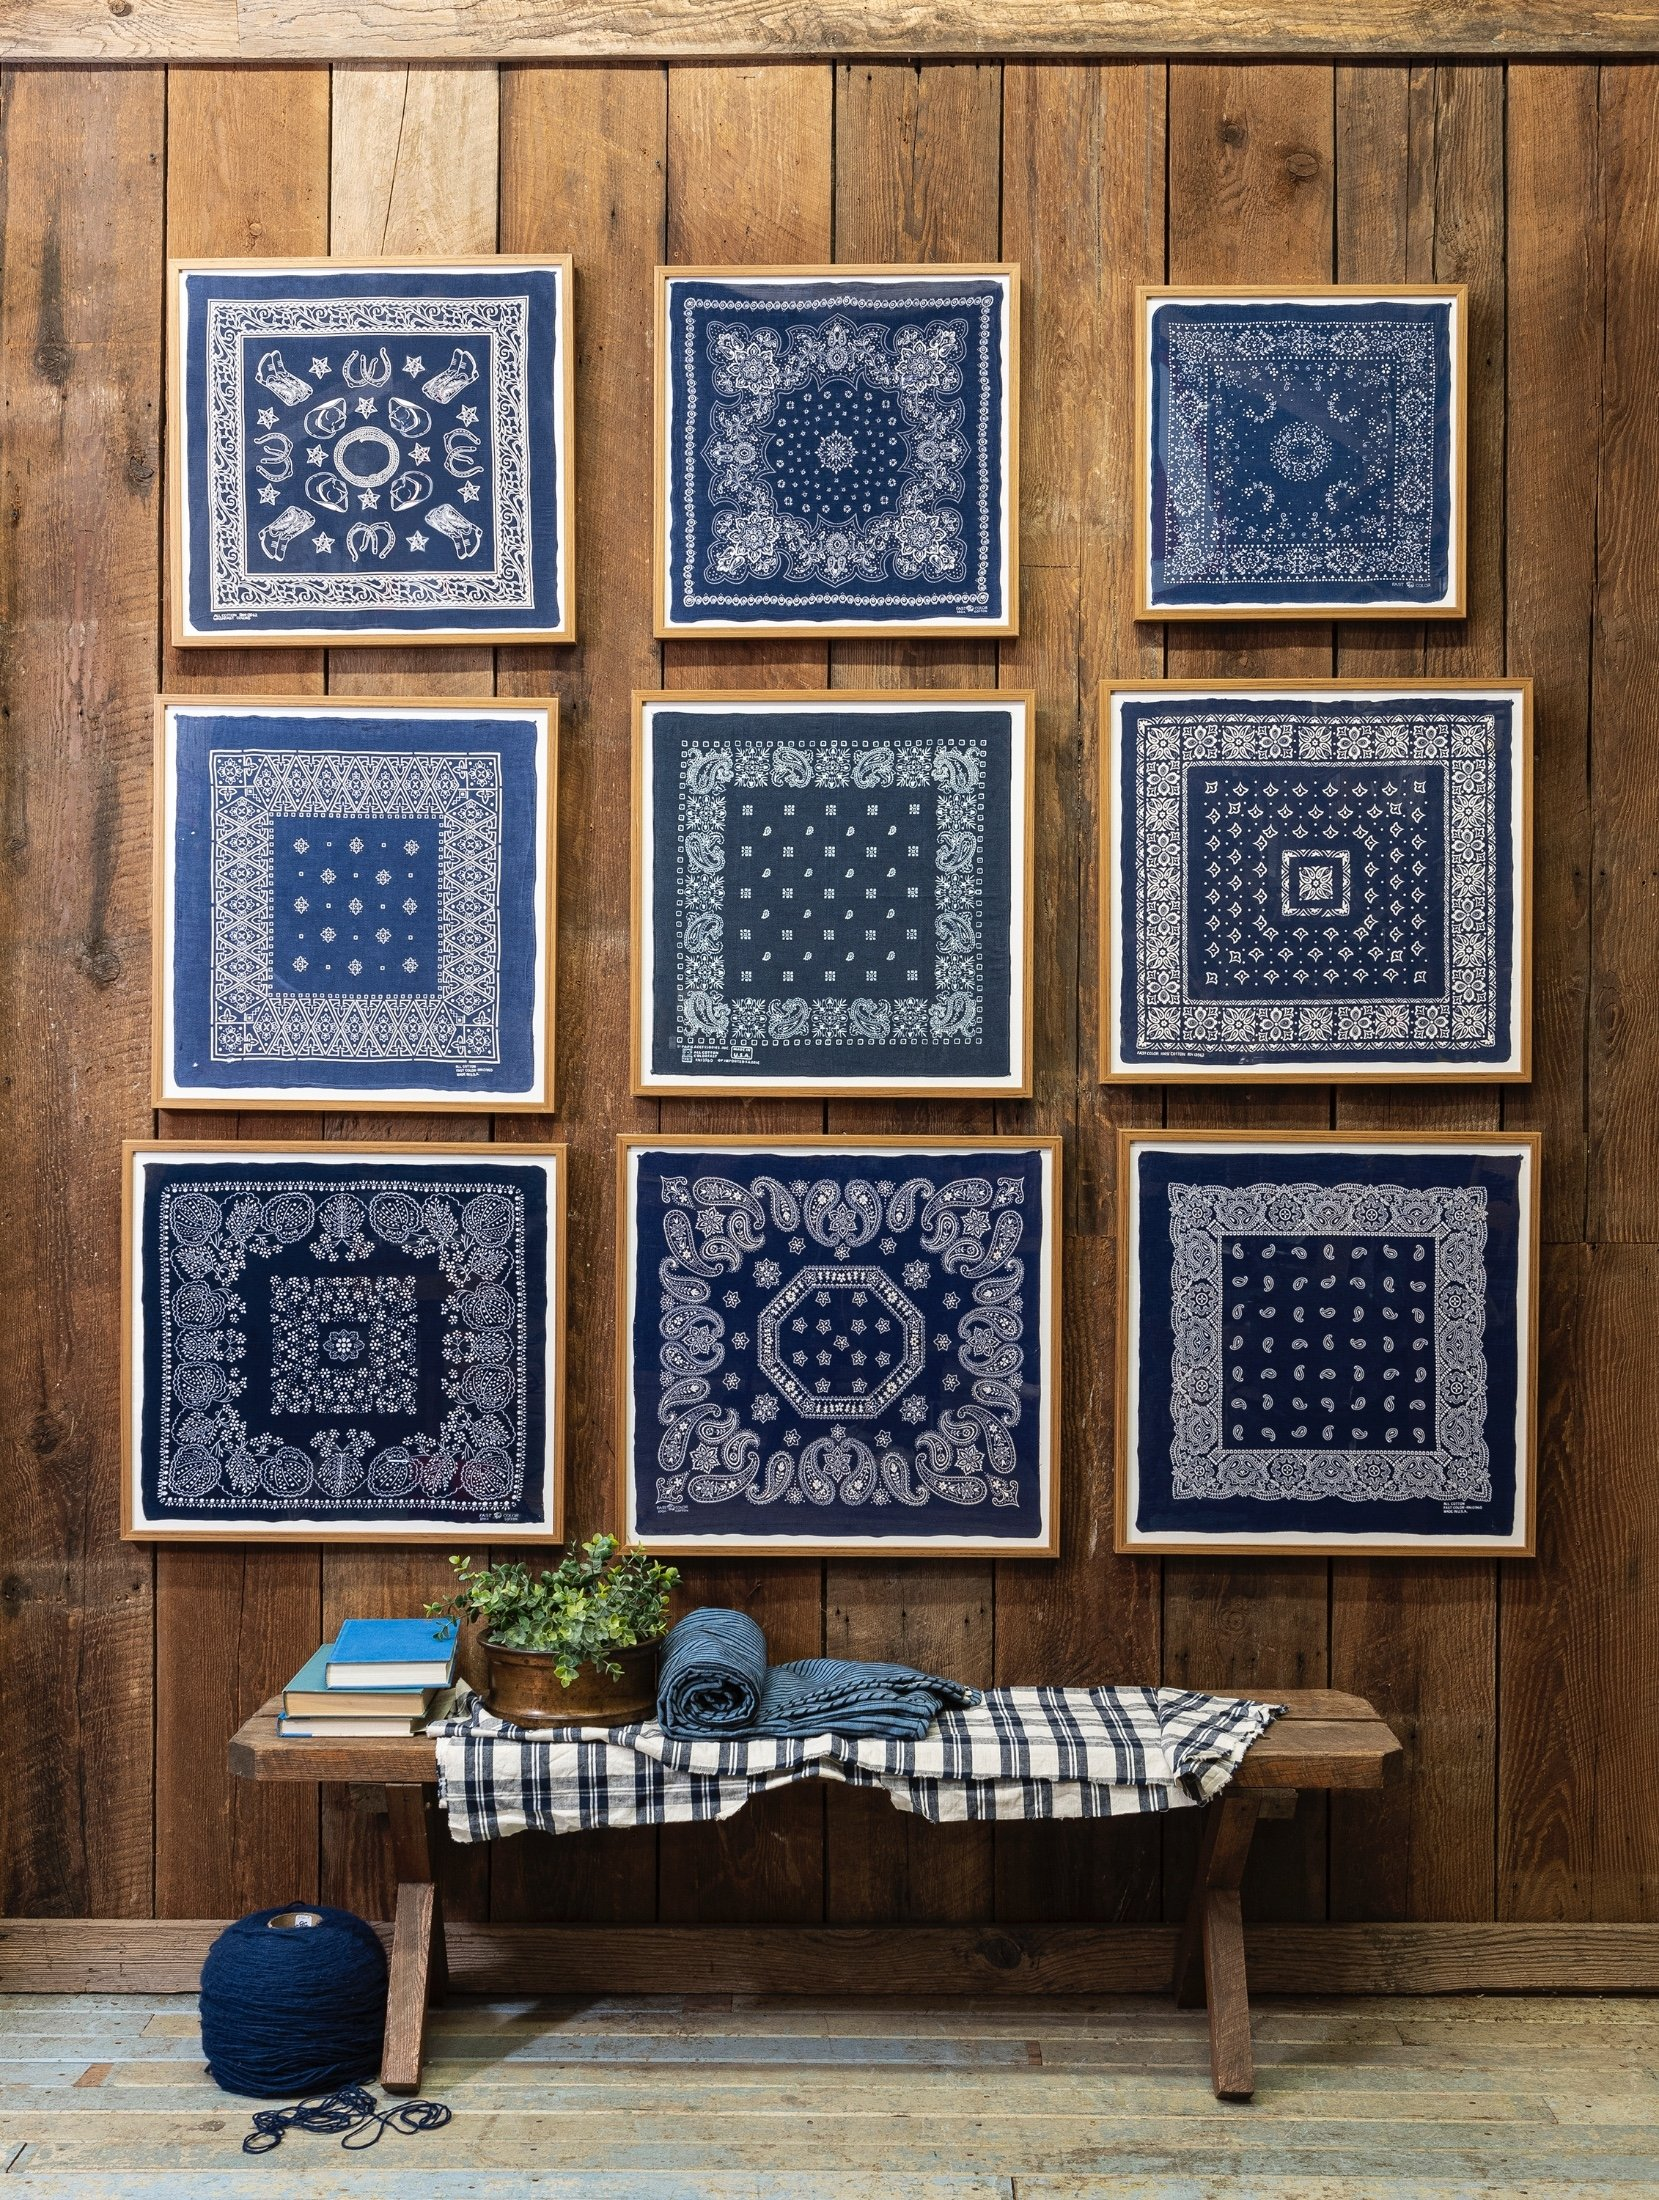 Portland Oregon-based interior designer Max Humphrey has been collecting bandanas and other vintage items for years, incorporating them into his own home and client projects. (Christopher Dibble via AP)